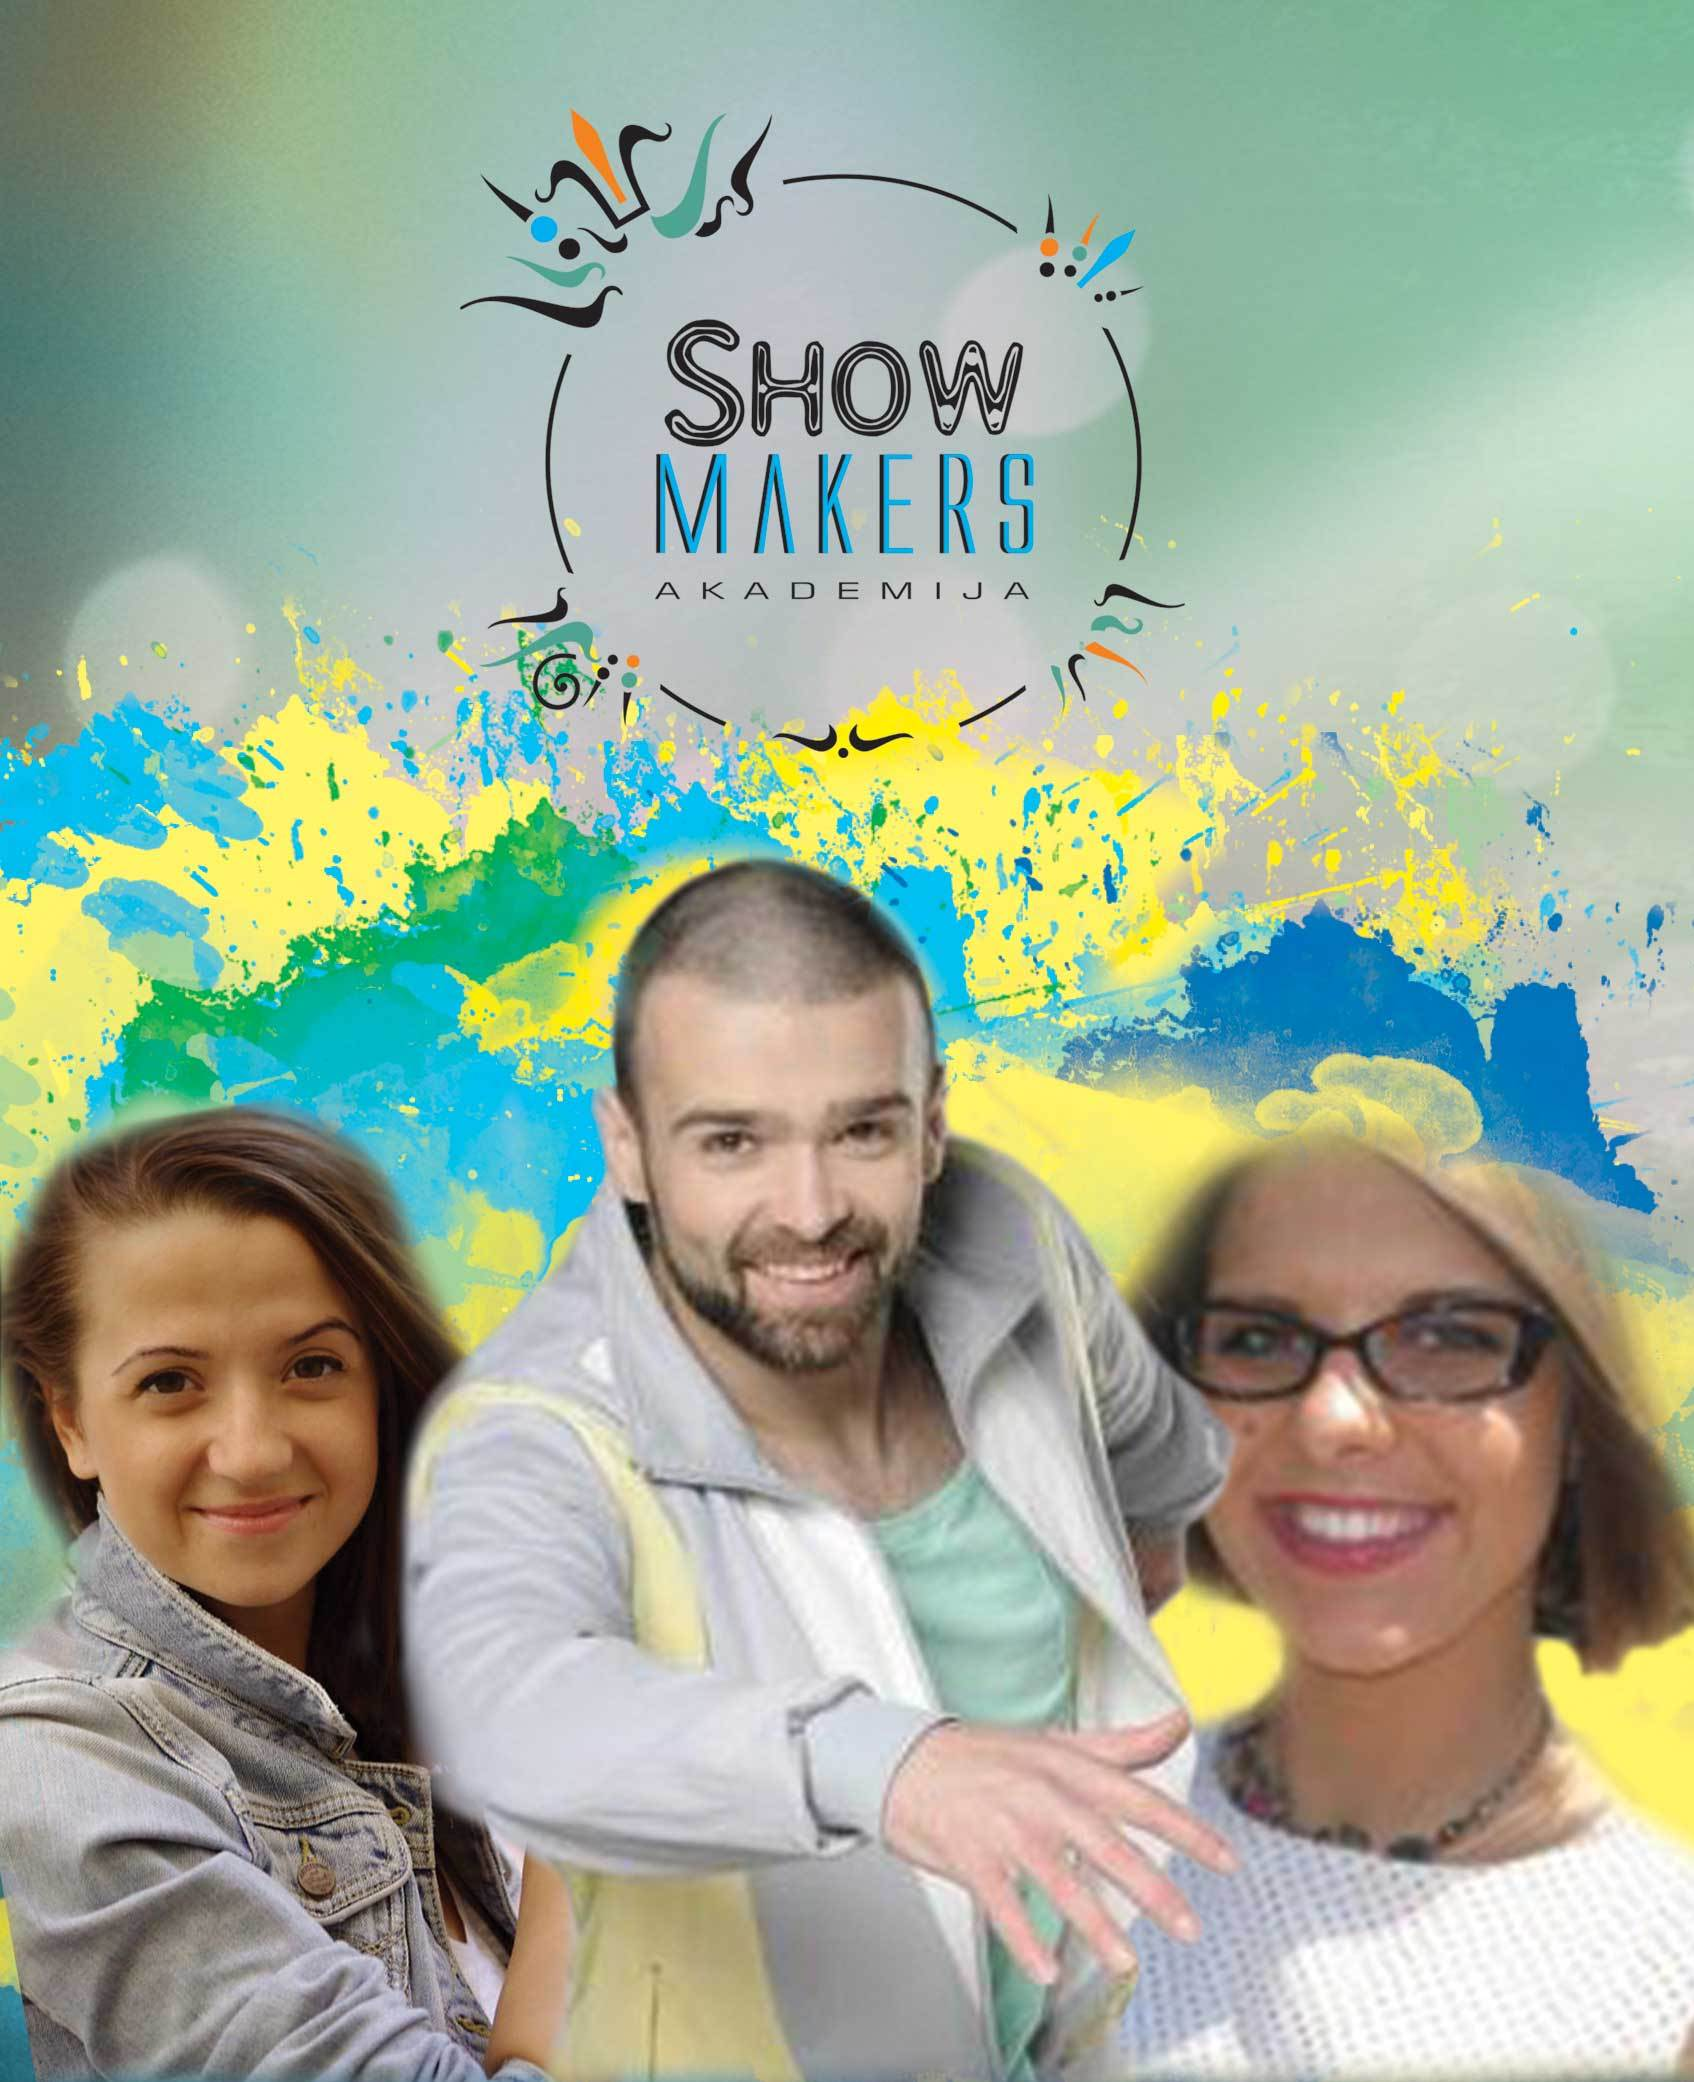 plakatas show makers